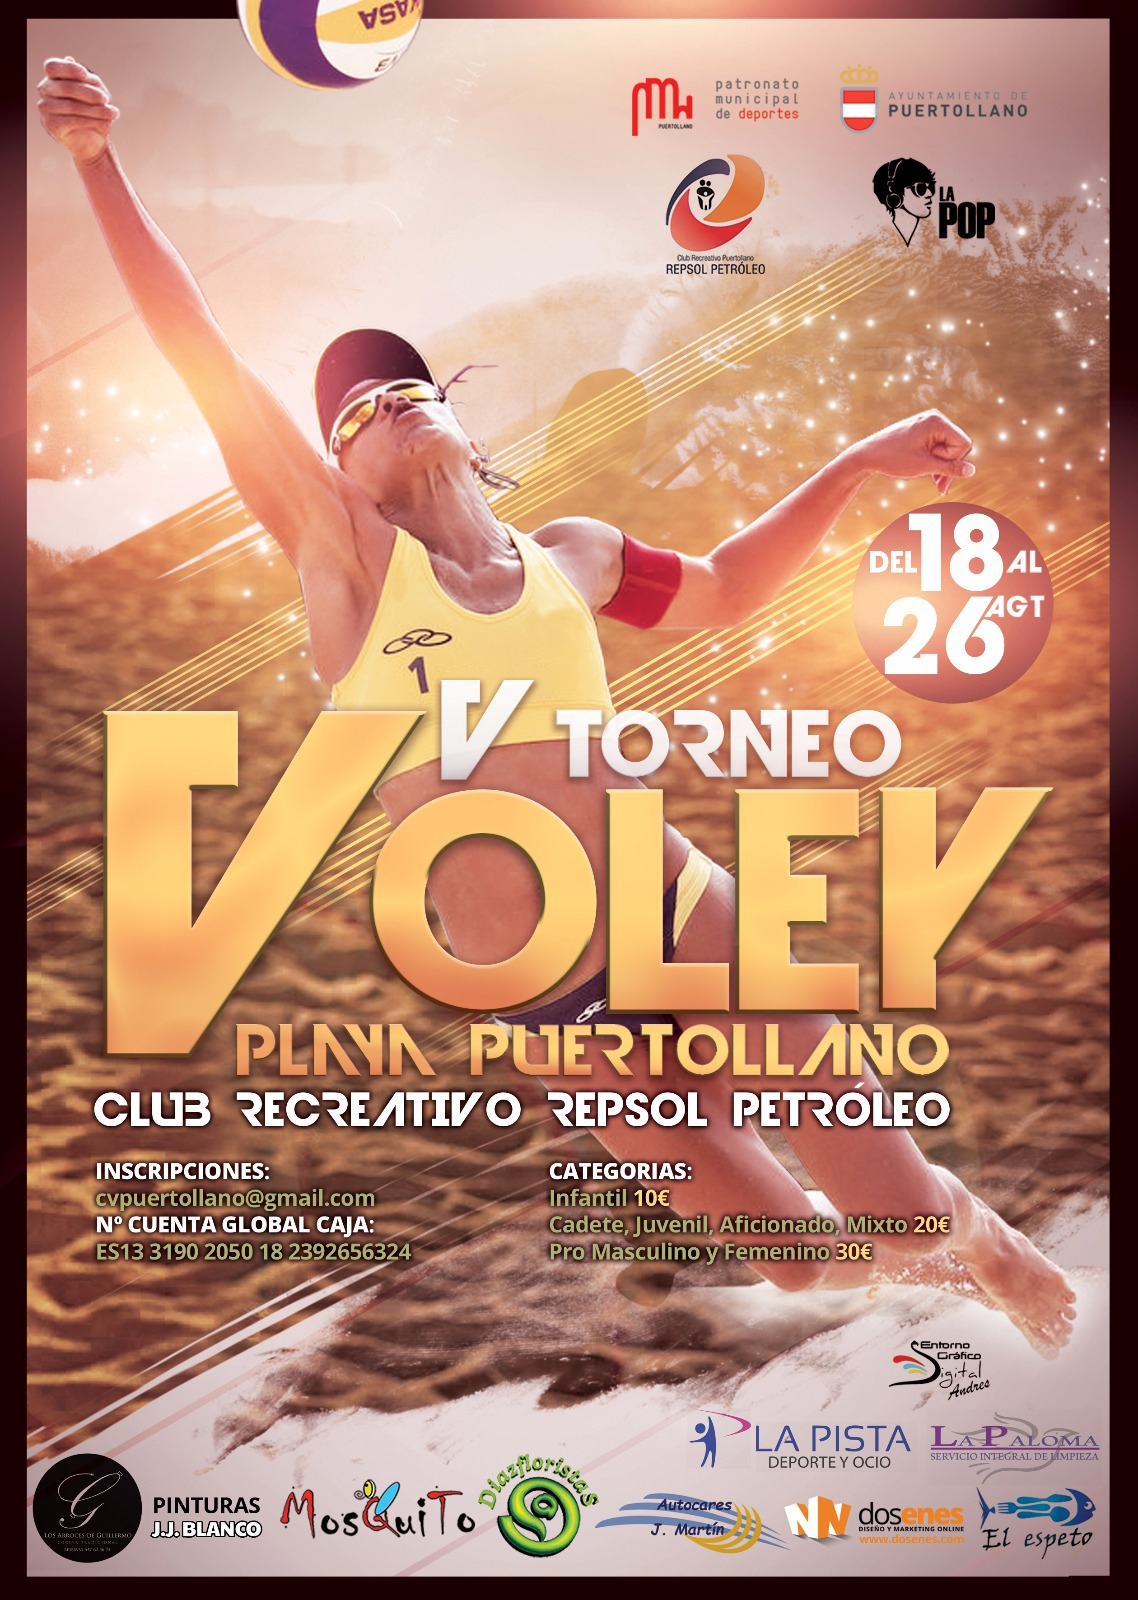 V Torneo Voley Playa Puertollano